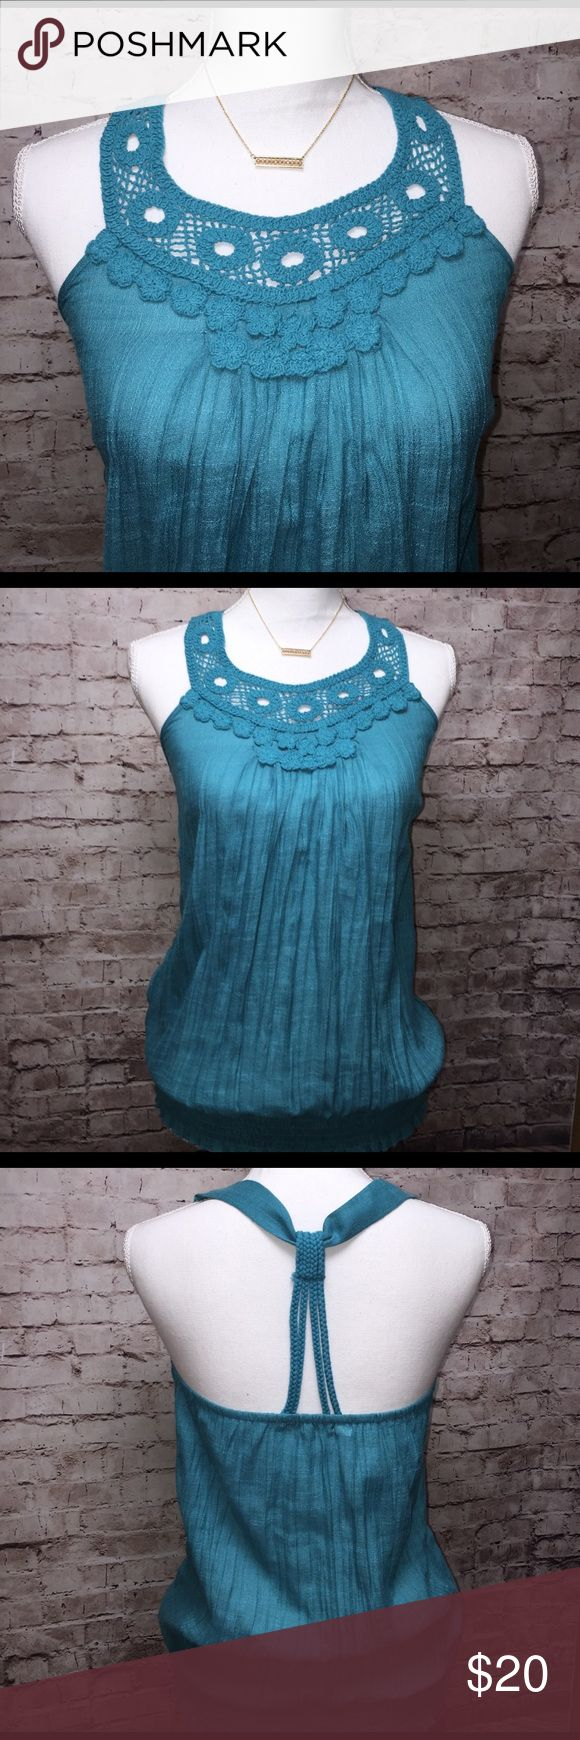 Turquoise Top by Maurices Turquoise Top by Maurices ... Spring hasn't Sprung but, it's coming soon! Embroidered neckline and rope knot down the spine. Beautiful top for the weekend outing! Size small. NWT Maurices Tops Tank Tops